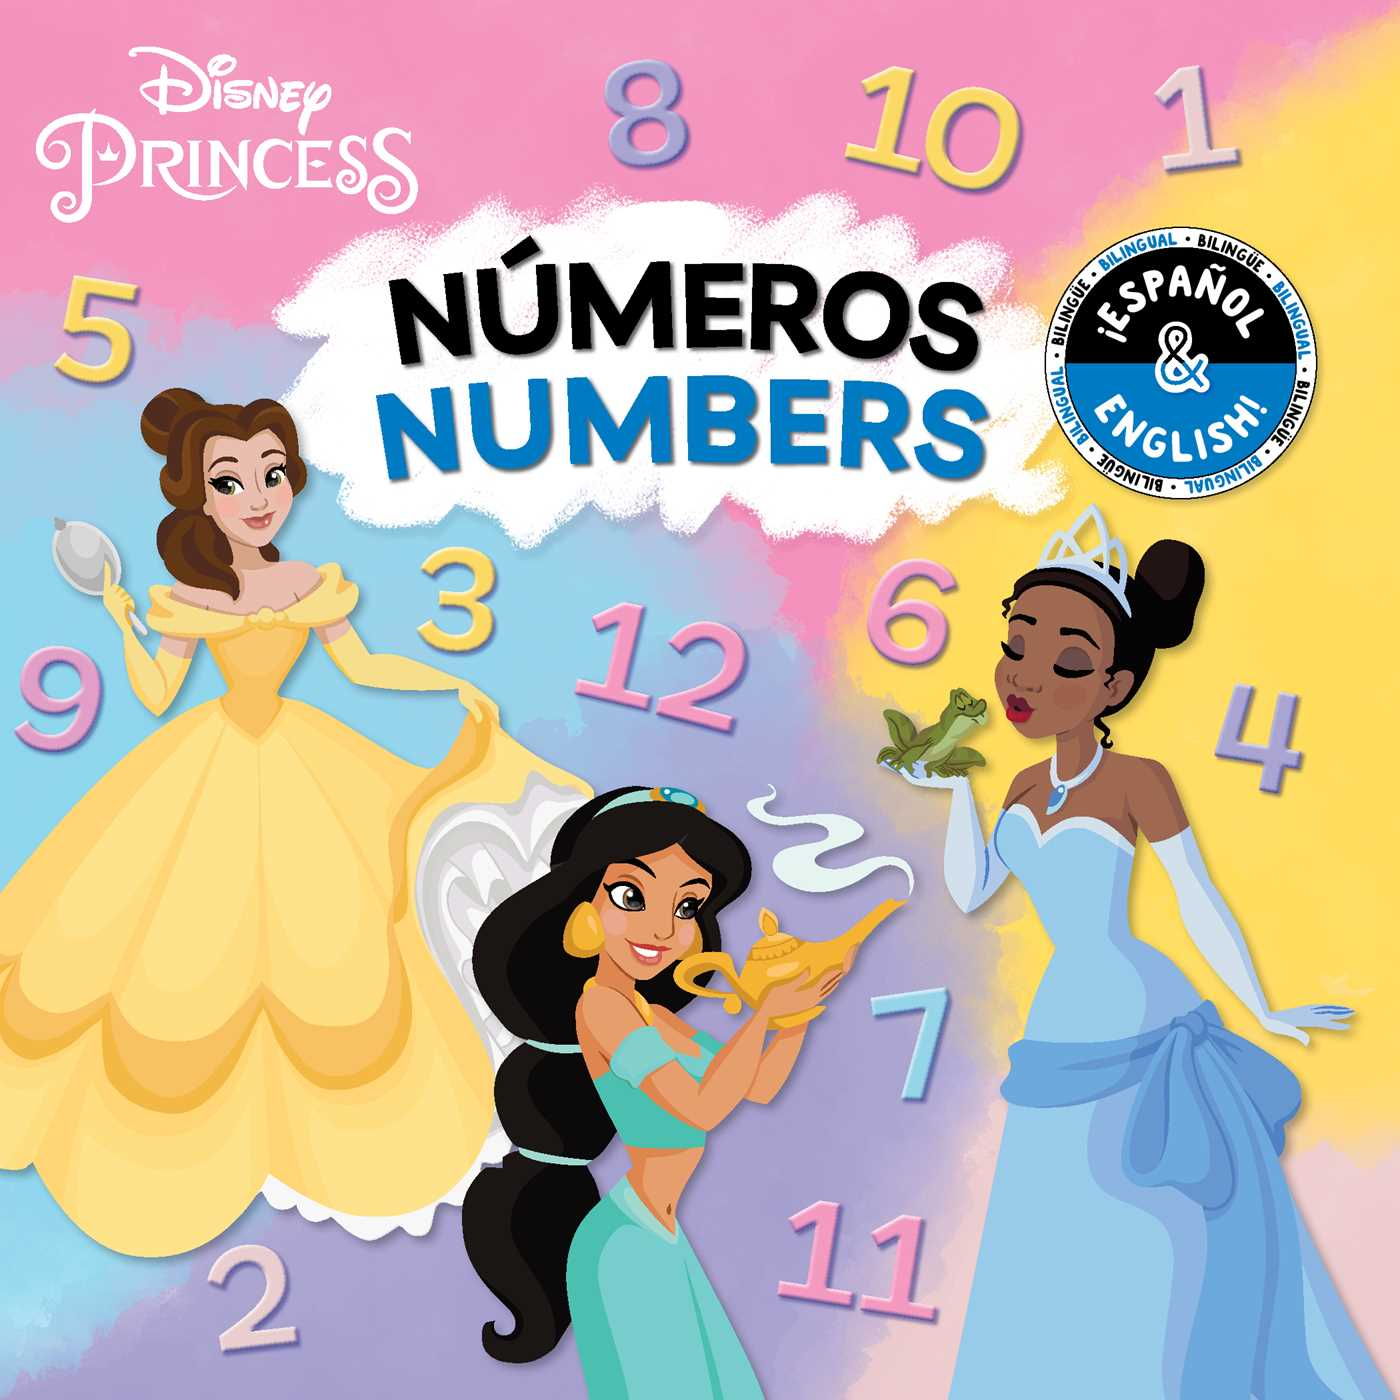 Numbers bilingual disney princess 9781499807806 hr